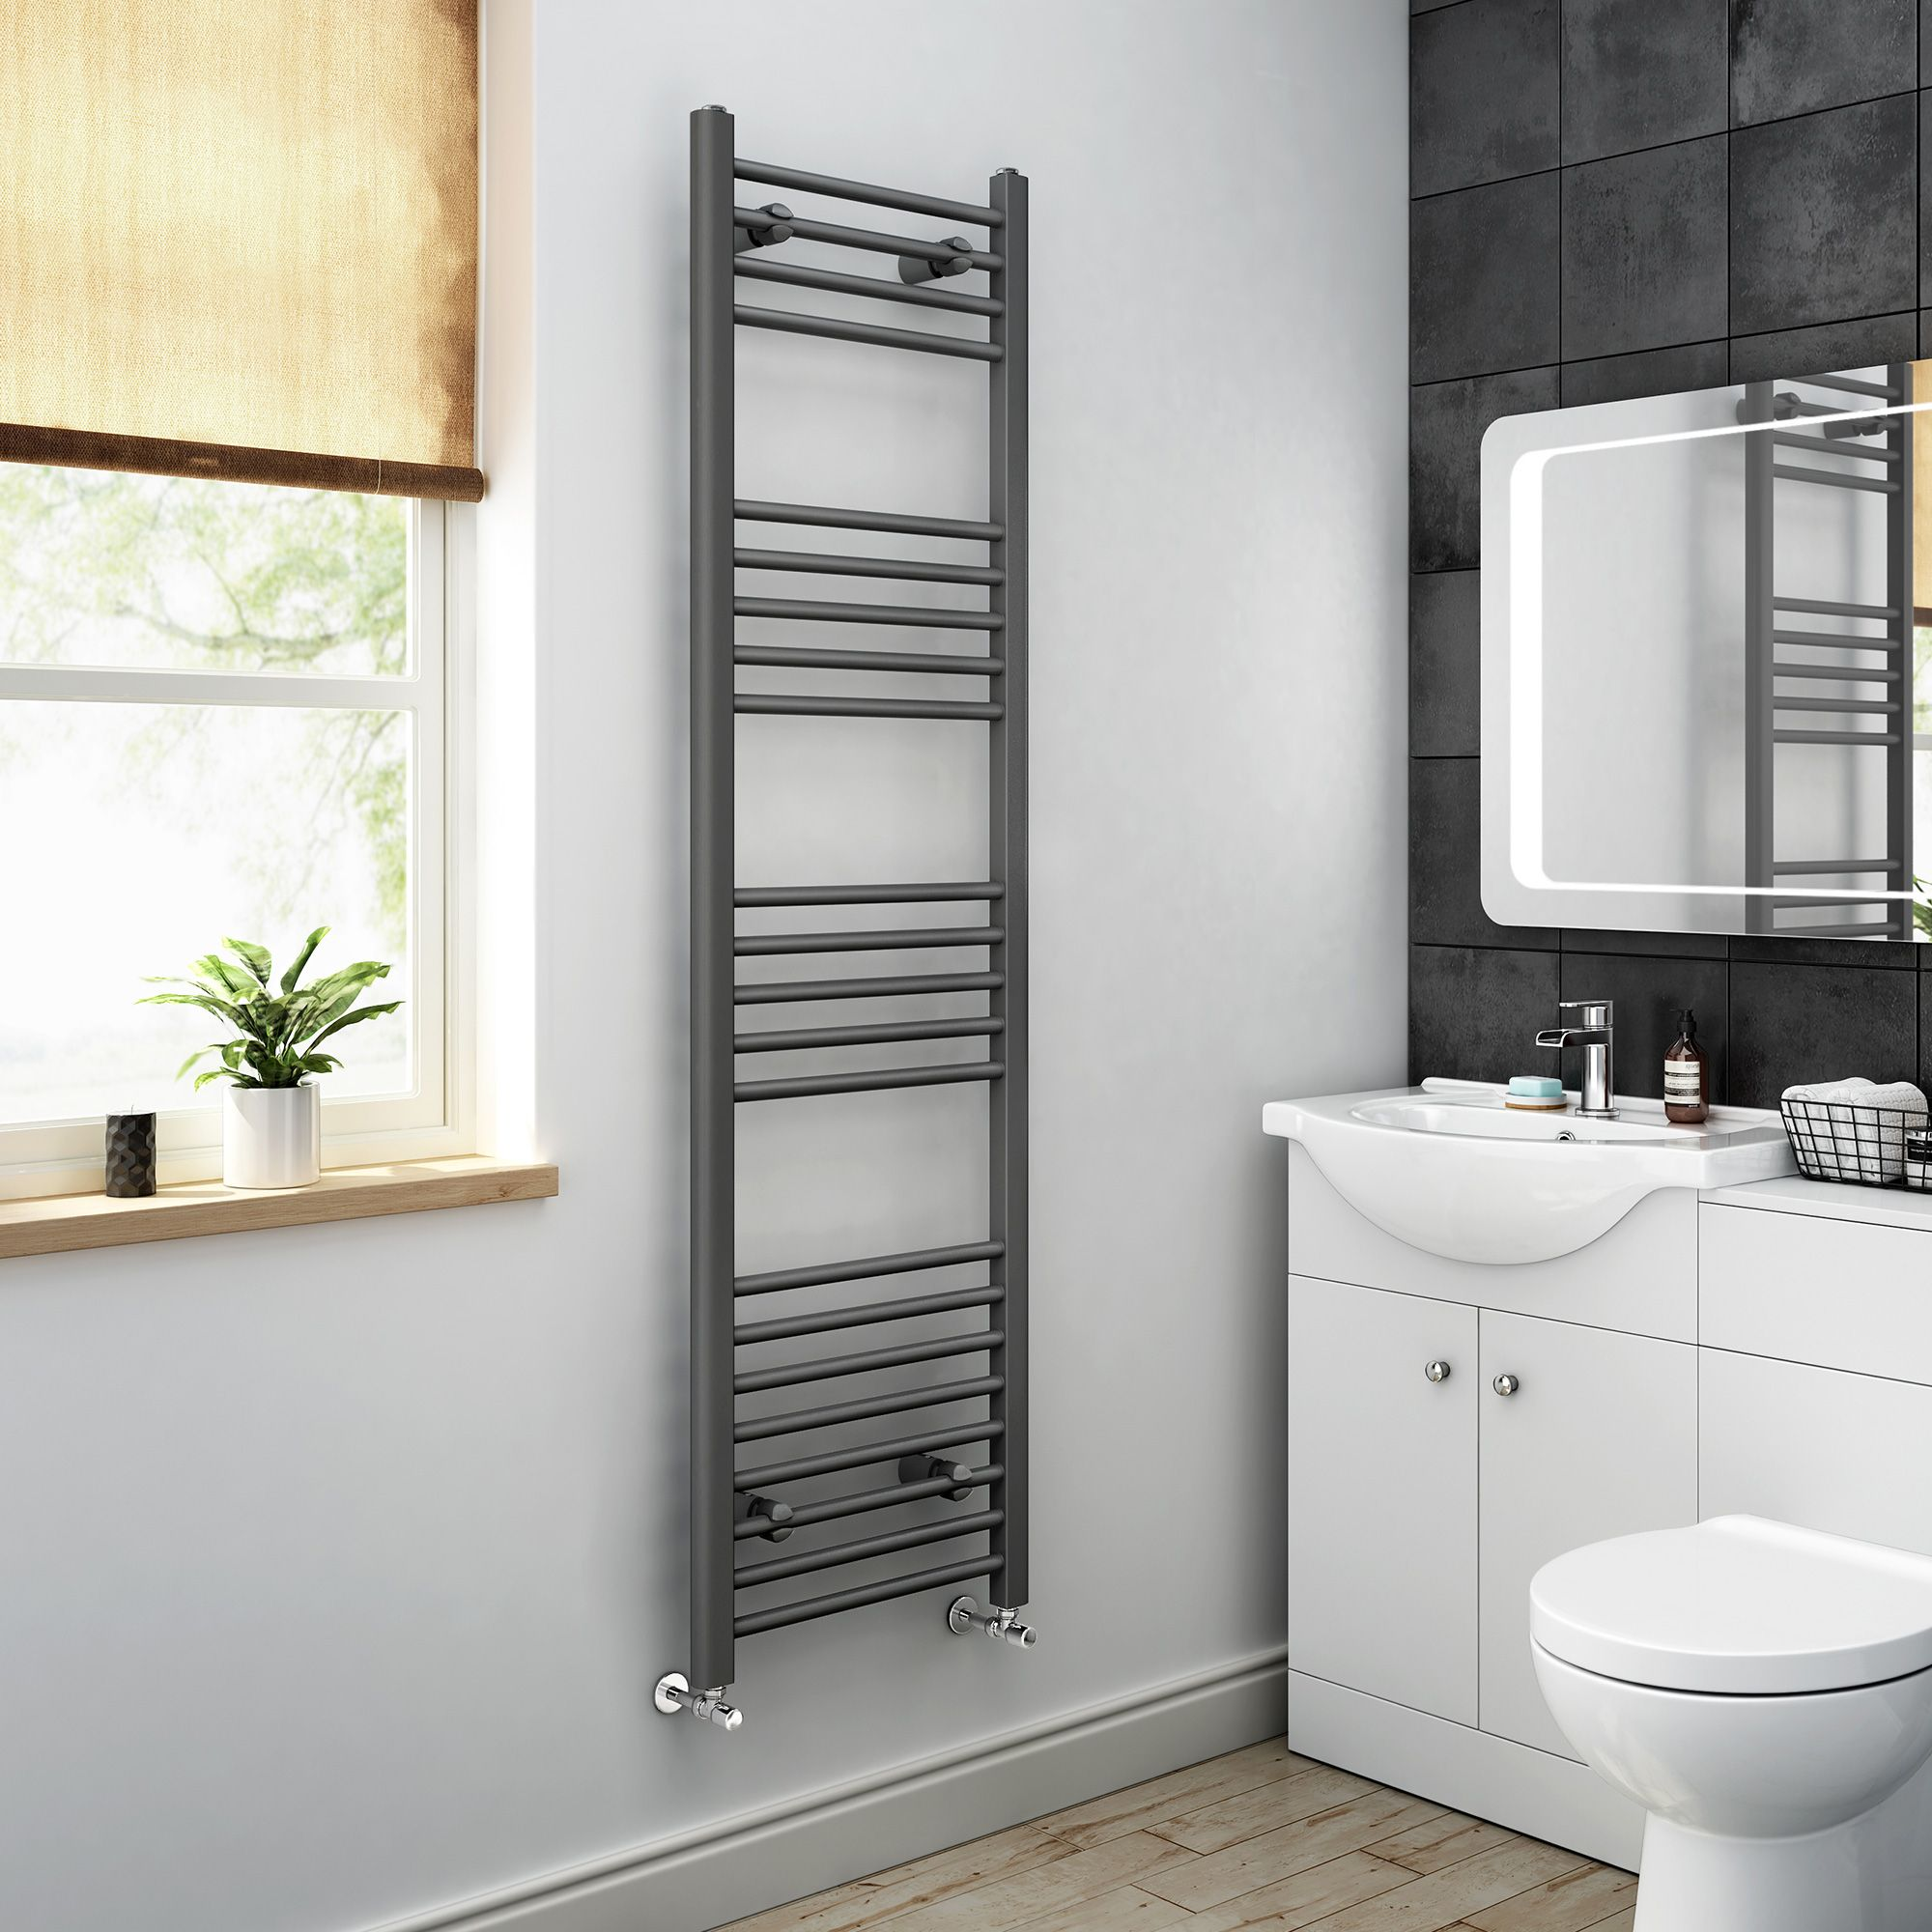 1600x450mm - Anthracite Heated Straight Rail Ladder Towel Radiator ...